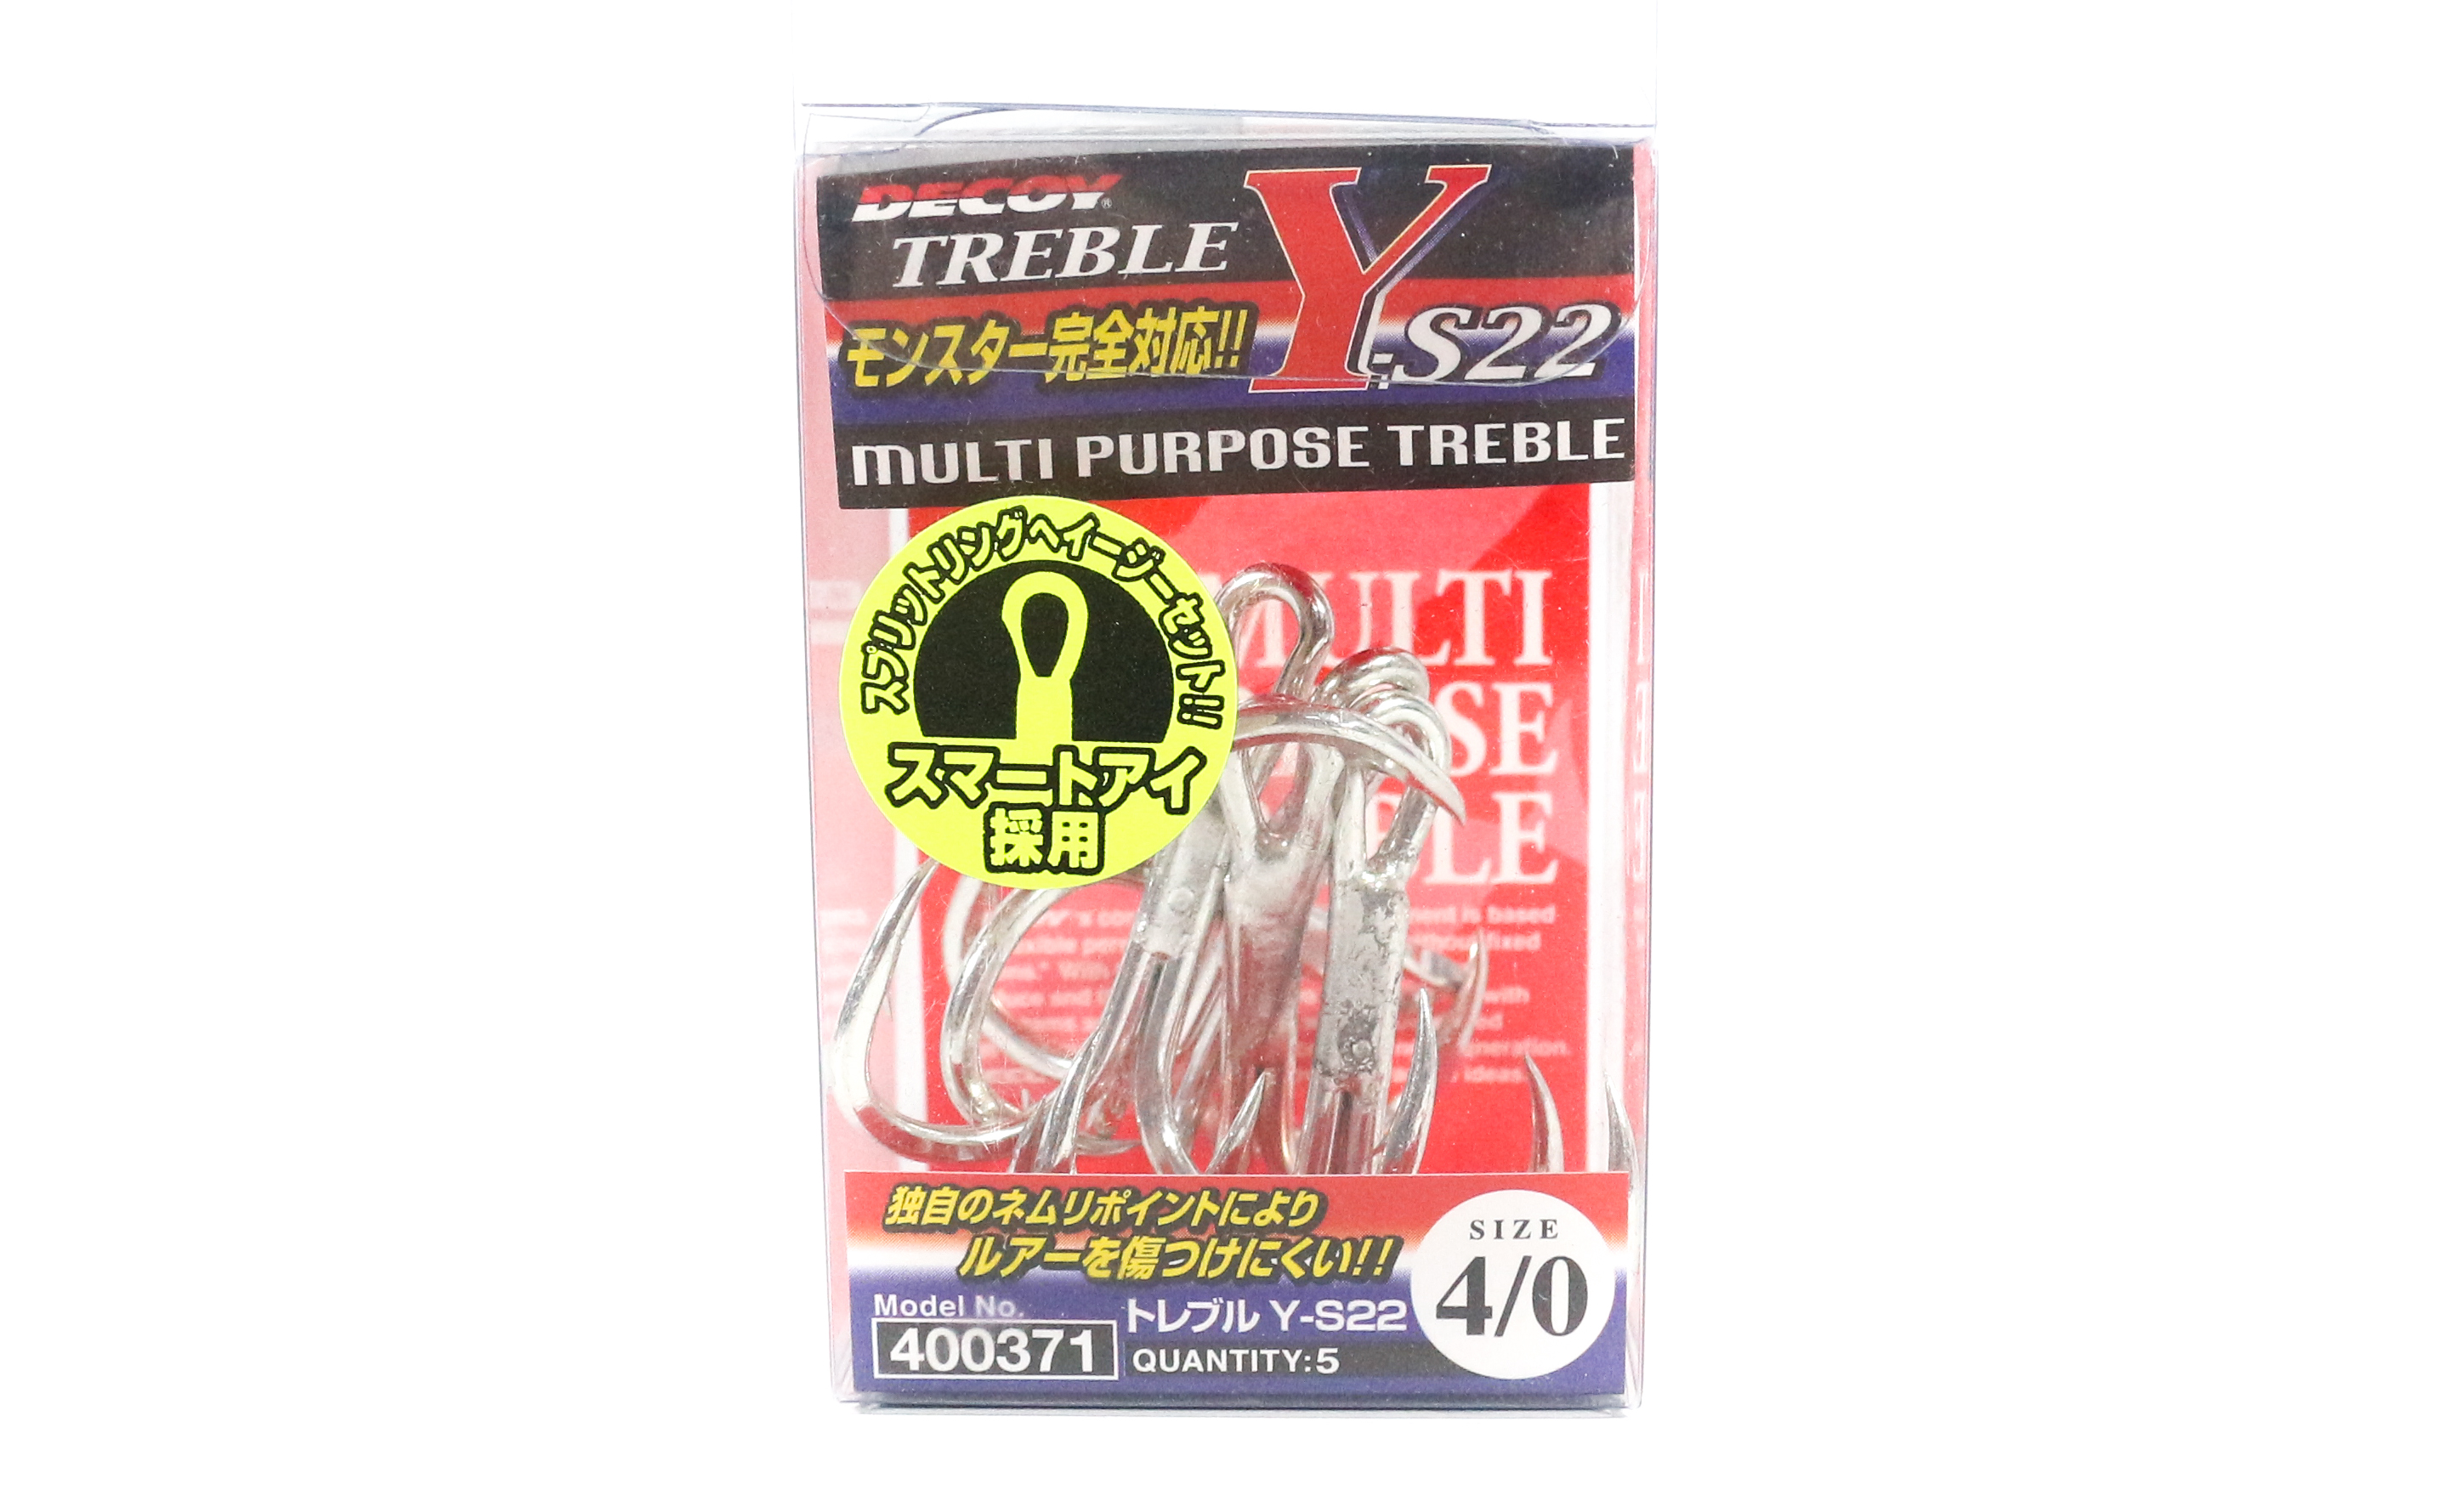 Decoy Y-S22 Treble Hook Heavy Duty Treble Hooks Size 4/0 (0371)